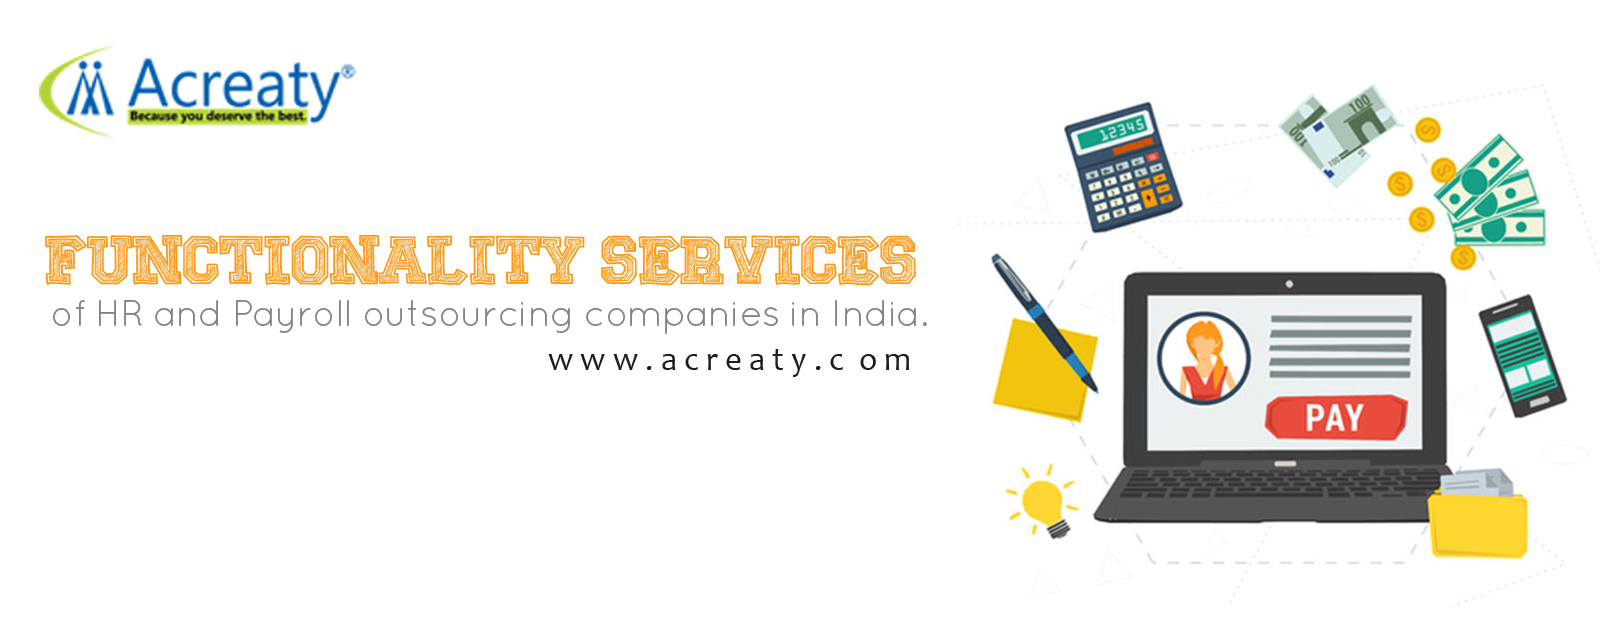 Functionality services for HR and Payroll outsourcing companies in India